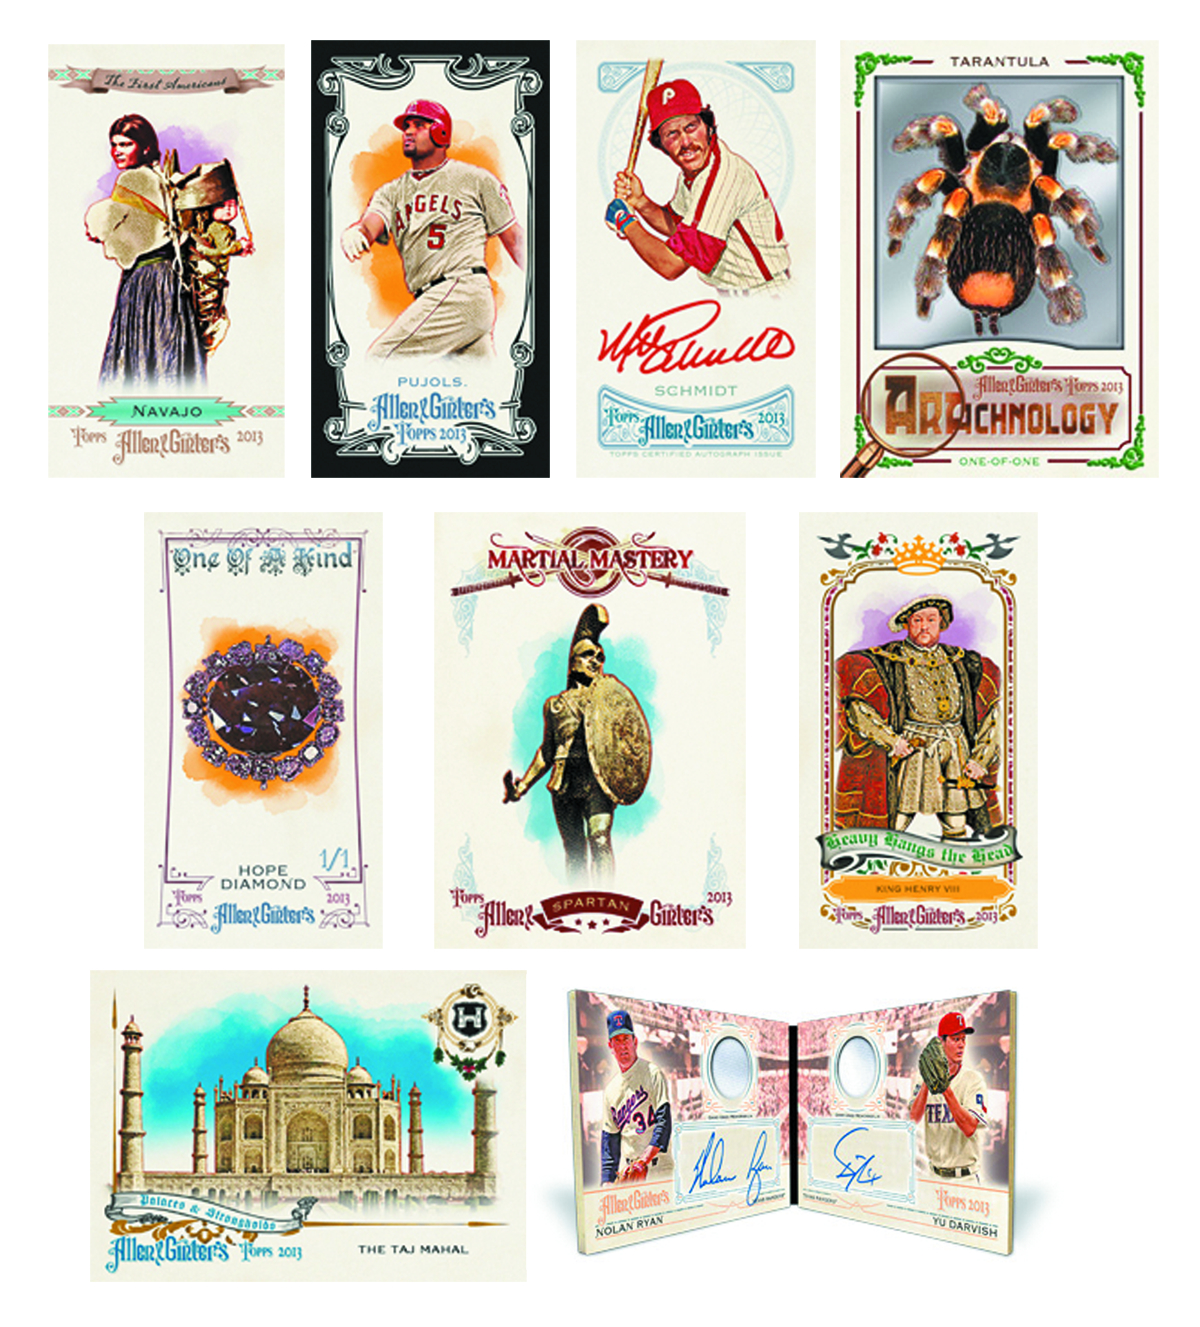 TOPPS 2013 ALLEN & GINTER BASEBALL T/C BOX